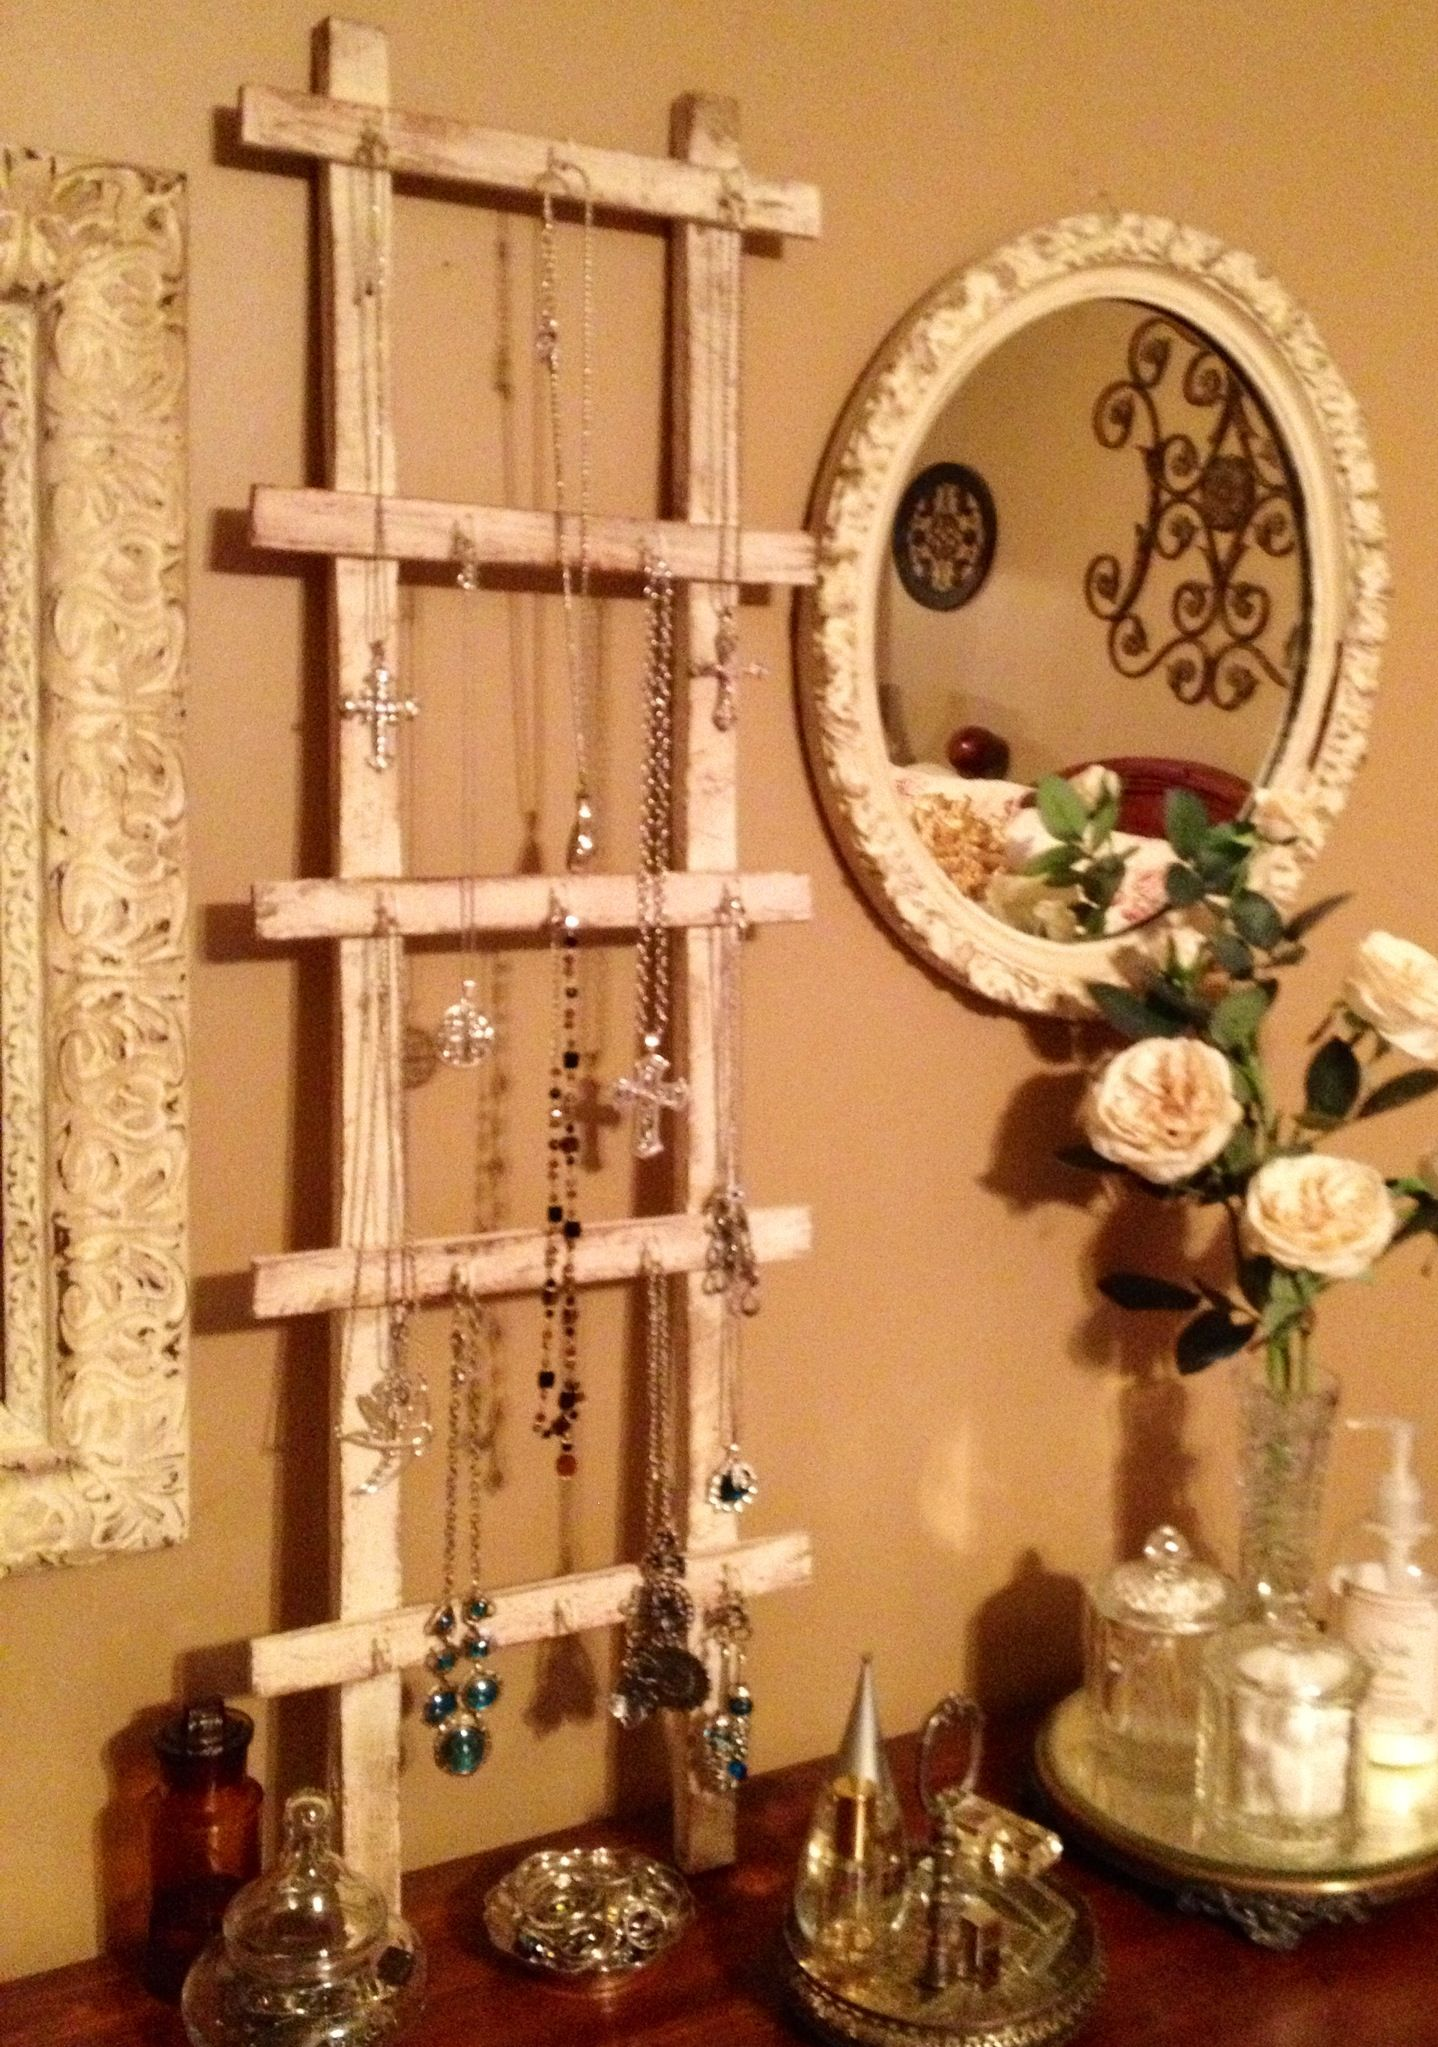 I painted this small trellis, rubbed it rustic and added a few hooks to make a $2 Jewelry holder. #DIY